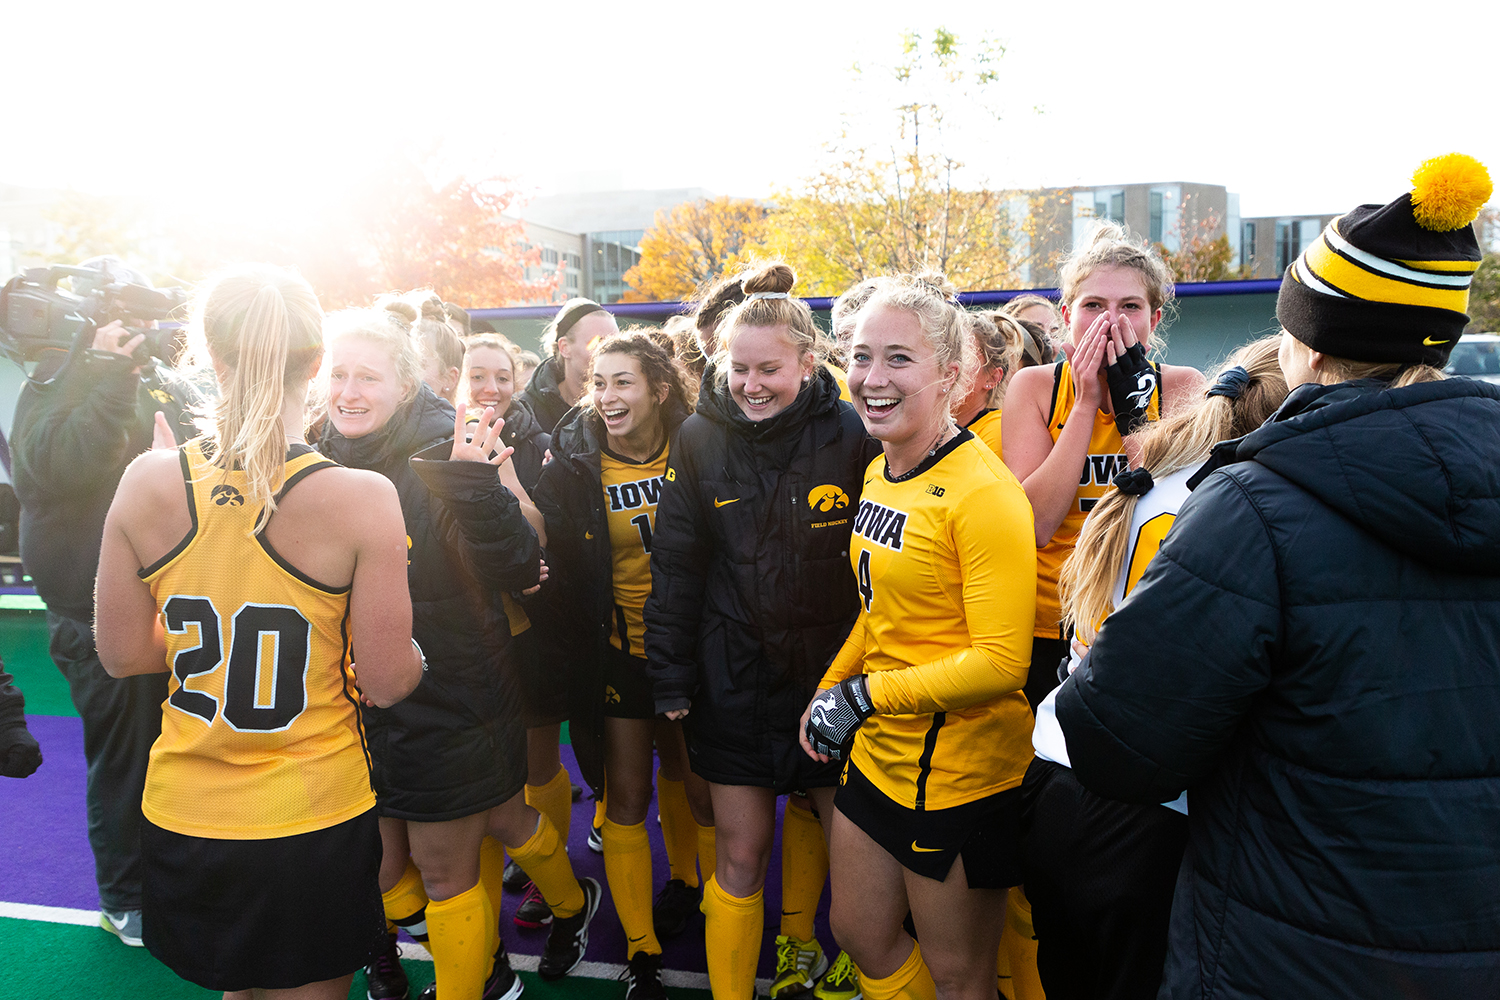 Iowa midfielder Makenna Grewe (center, left) smiles as the Iowa field hockey team celebrates after the Semifinals in the Big Ten Field Hockey Tournament at Lakeside Field in Evanston, Illinois, on Friday, Nov. 2, 2018. The No. 8 ranked Hawkeyes defeated the No. 7 ranked Wolverines 2-1.